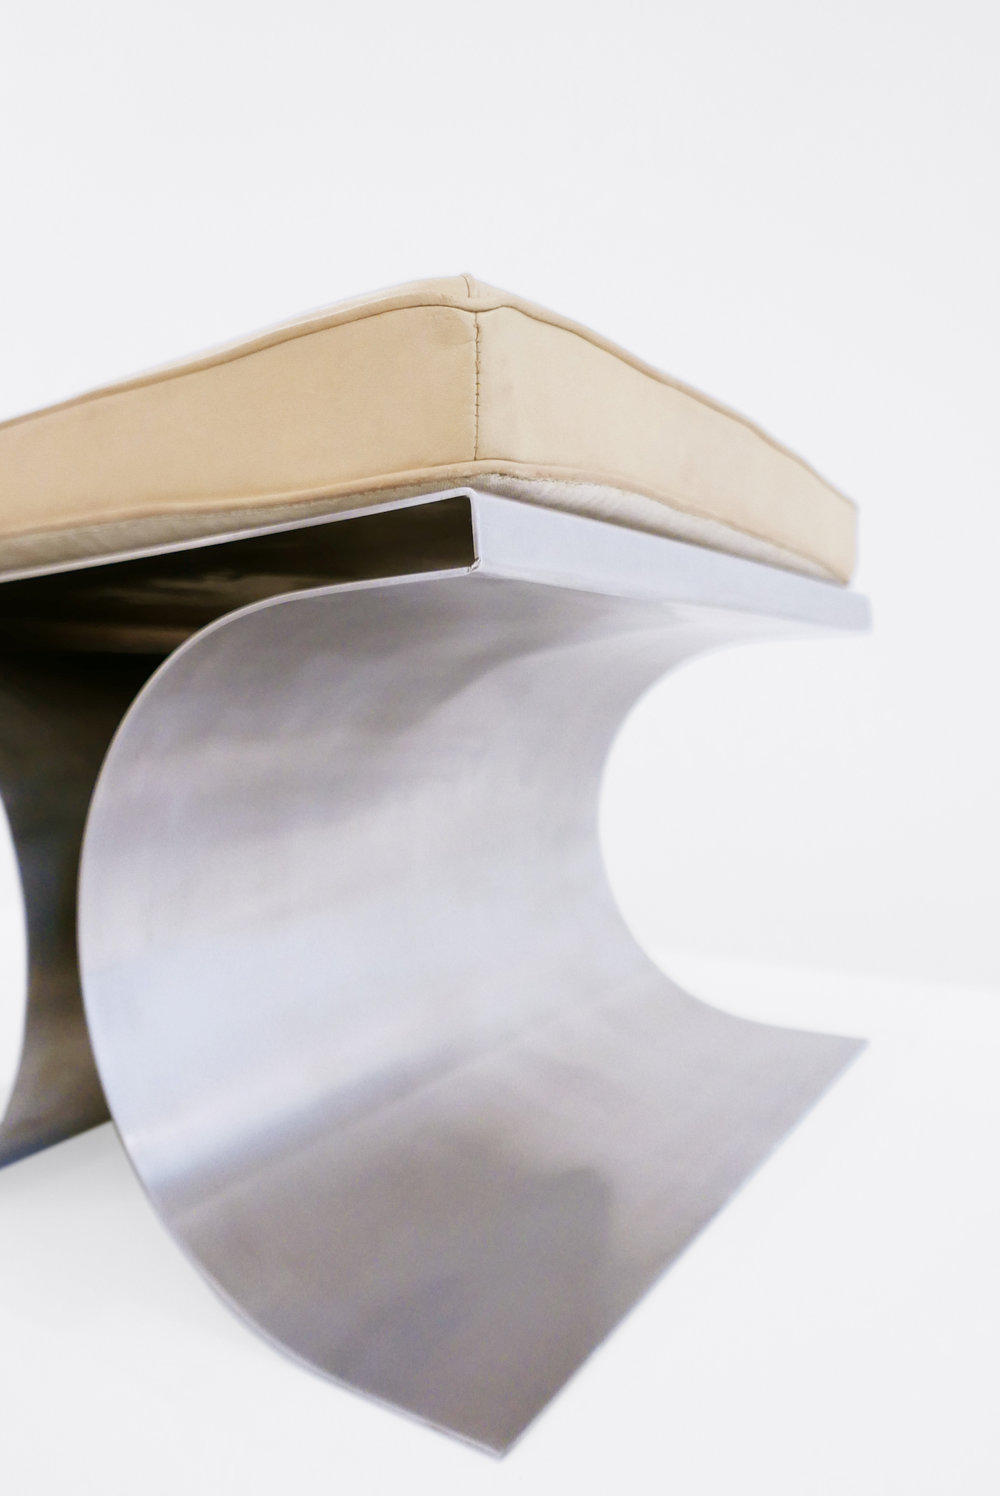 6. Micel Boyer, 'X' Stool, c. 1968, stainless steel and leather upholstery, 16H x 19.75W x 19.75D inches.jpg